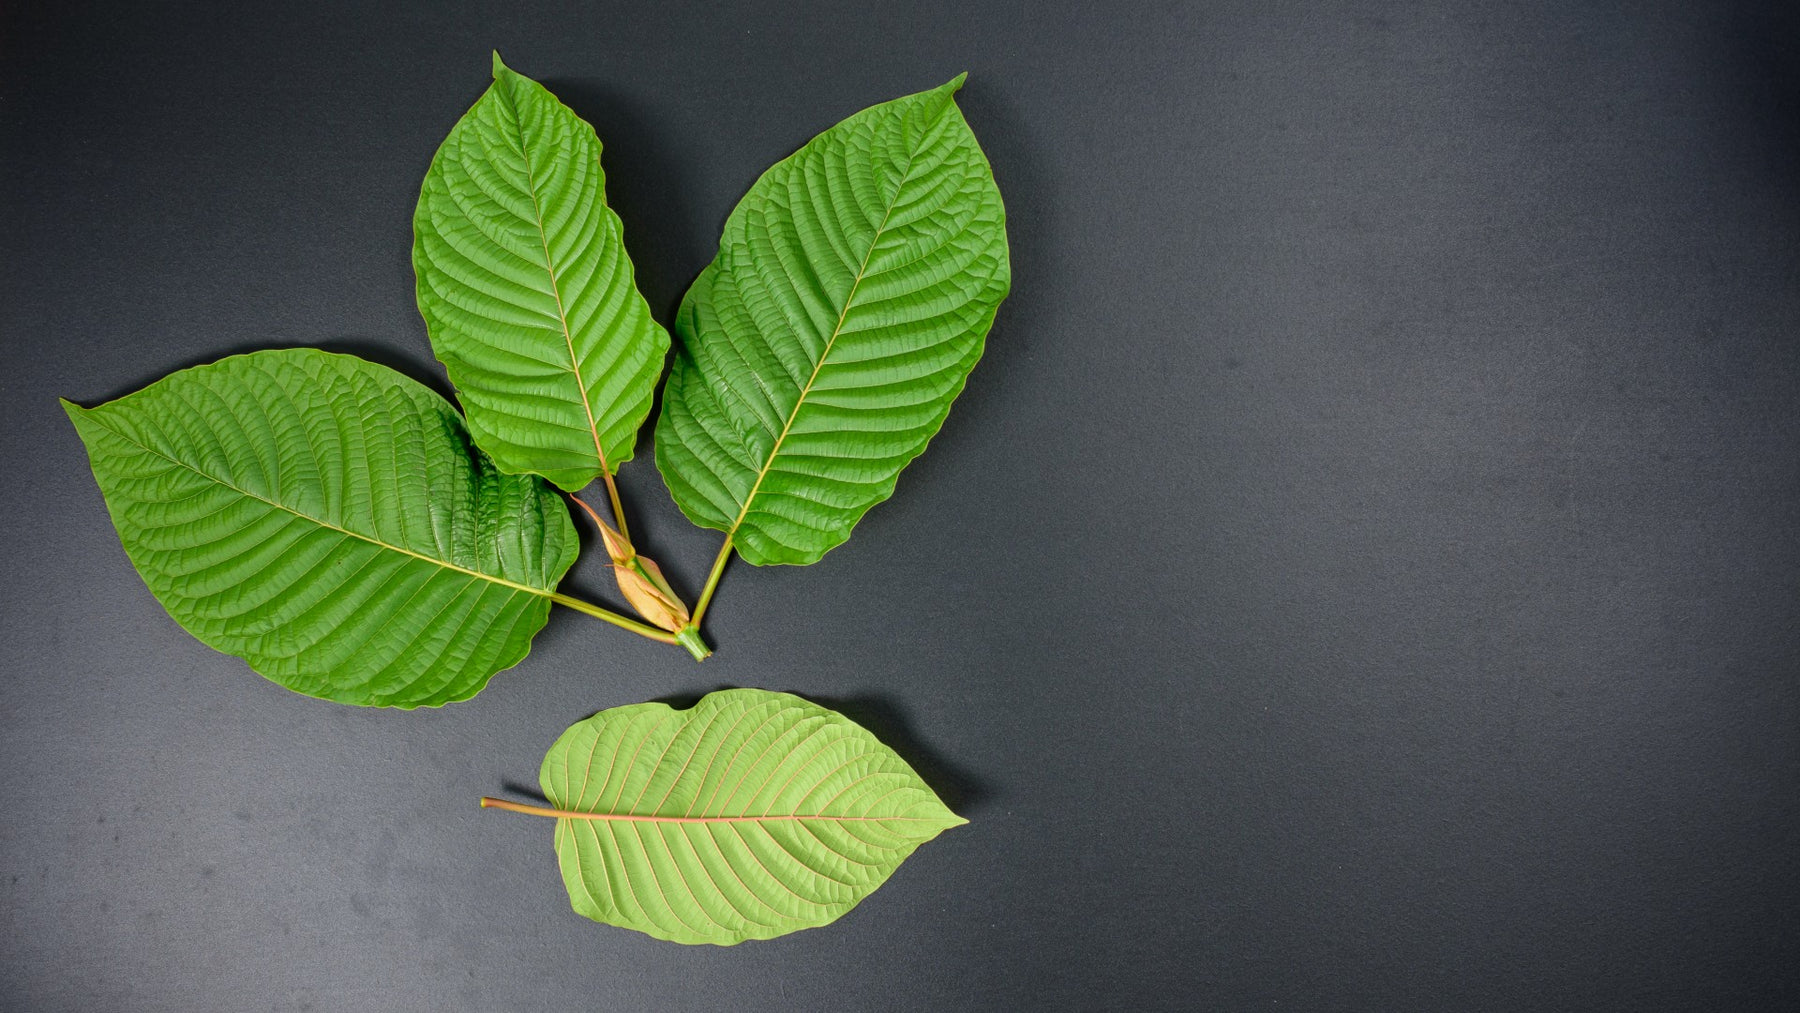 Kratom: Guide to Benefits and Safety Concerns